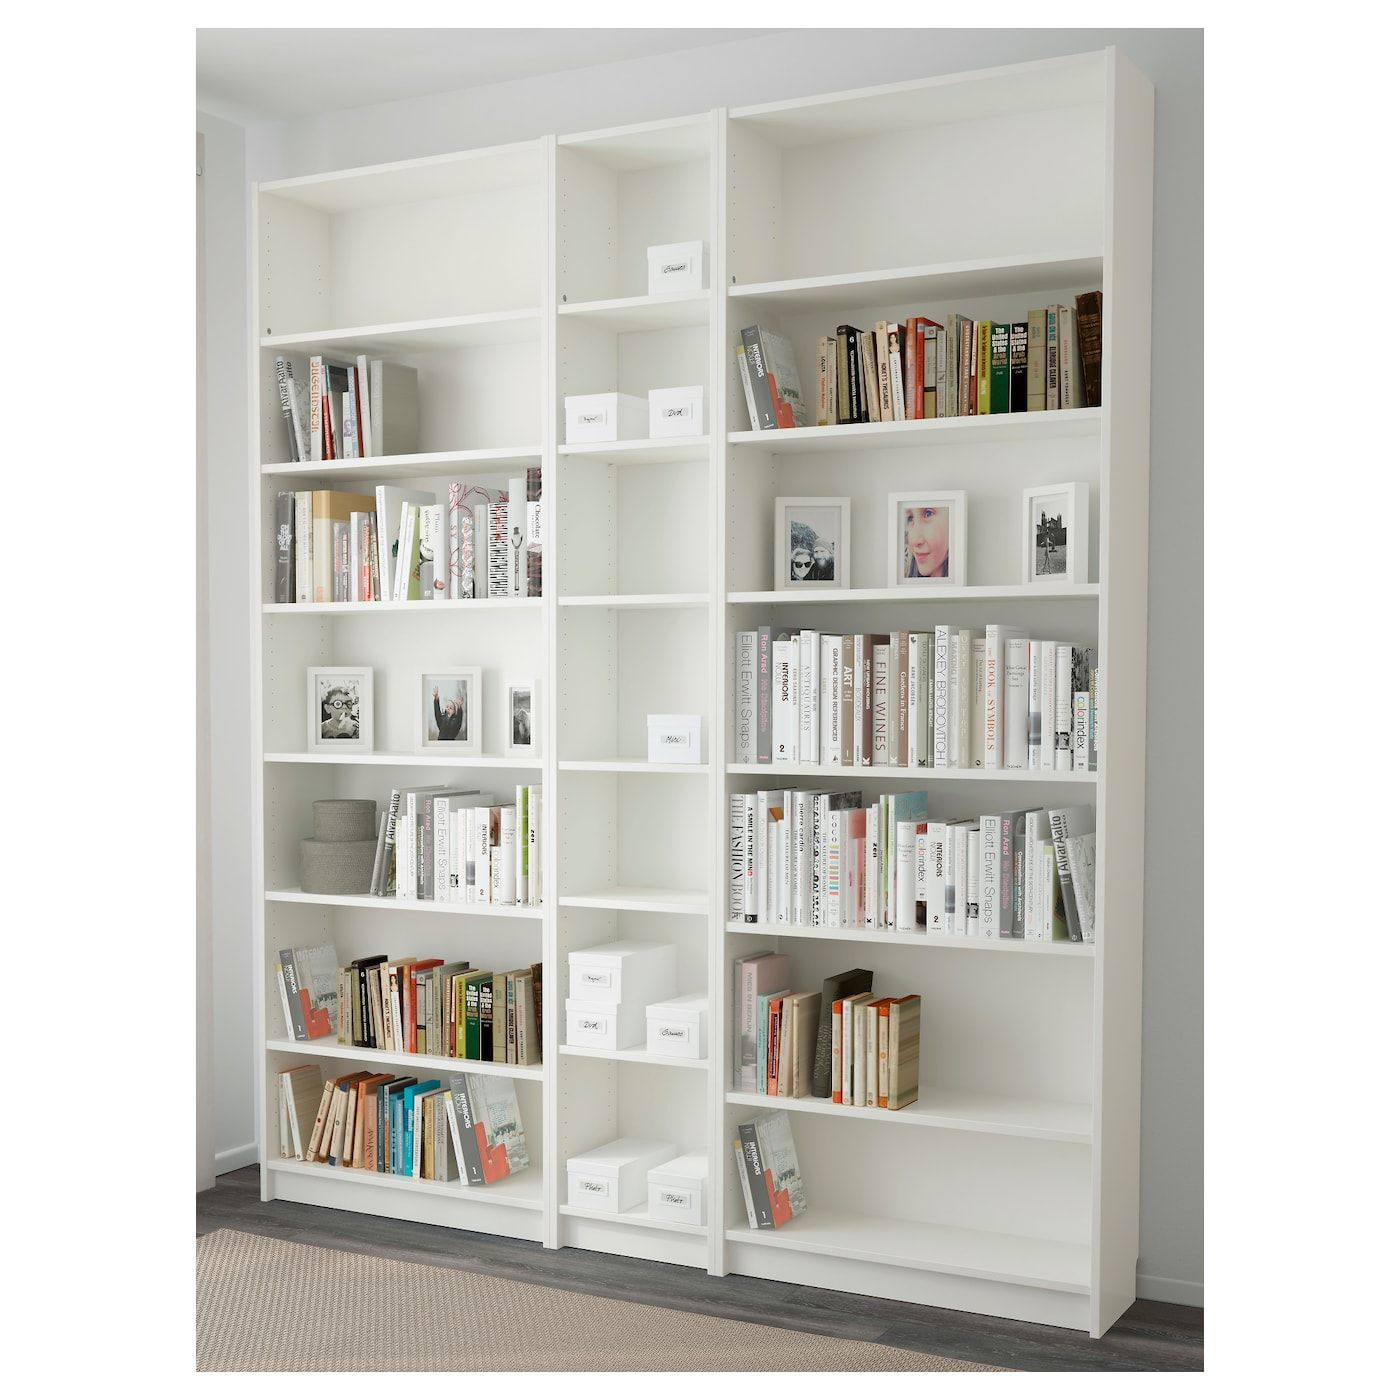 Billy Bucherregal Weiss Ikea Deutschland White Bookcase Ikea Billy Bookcase White Billy Bookcase